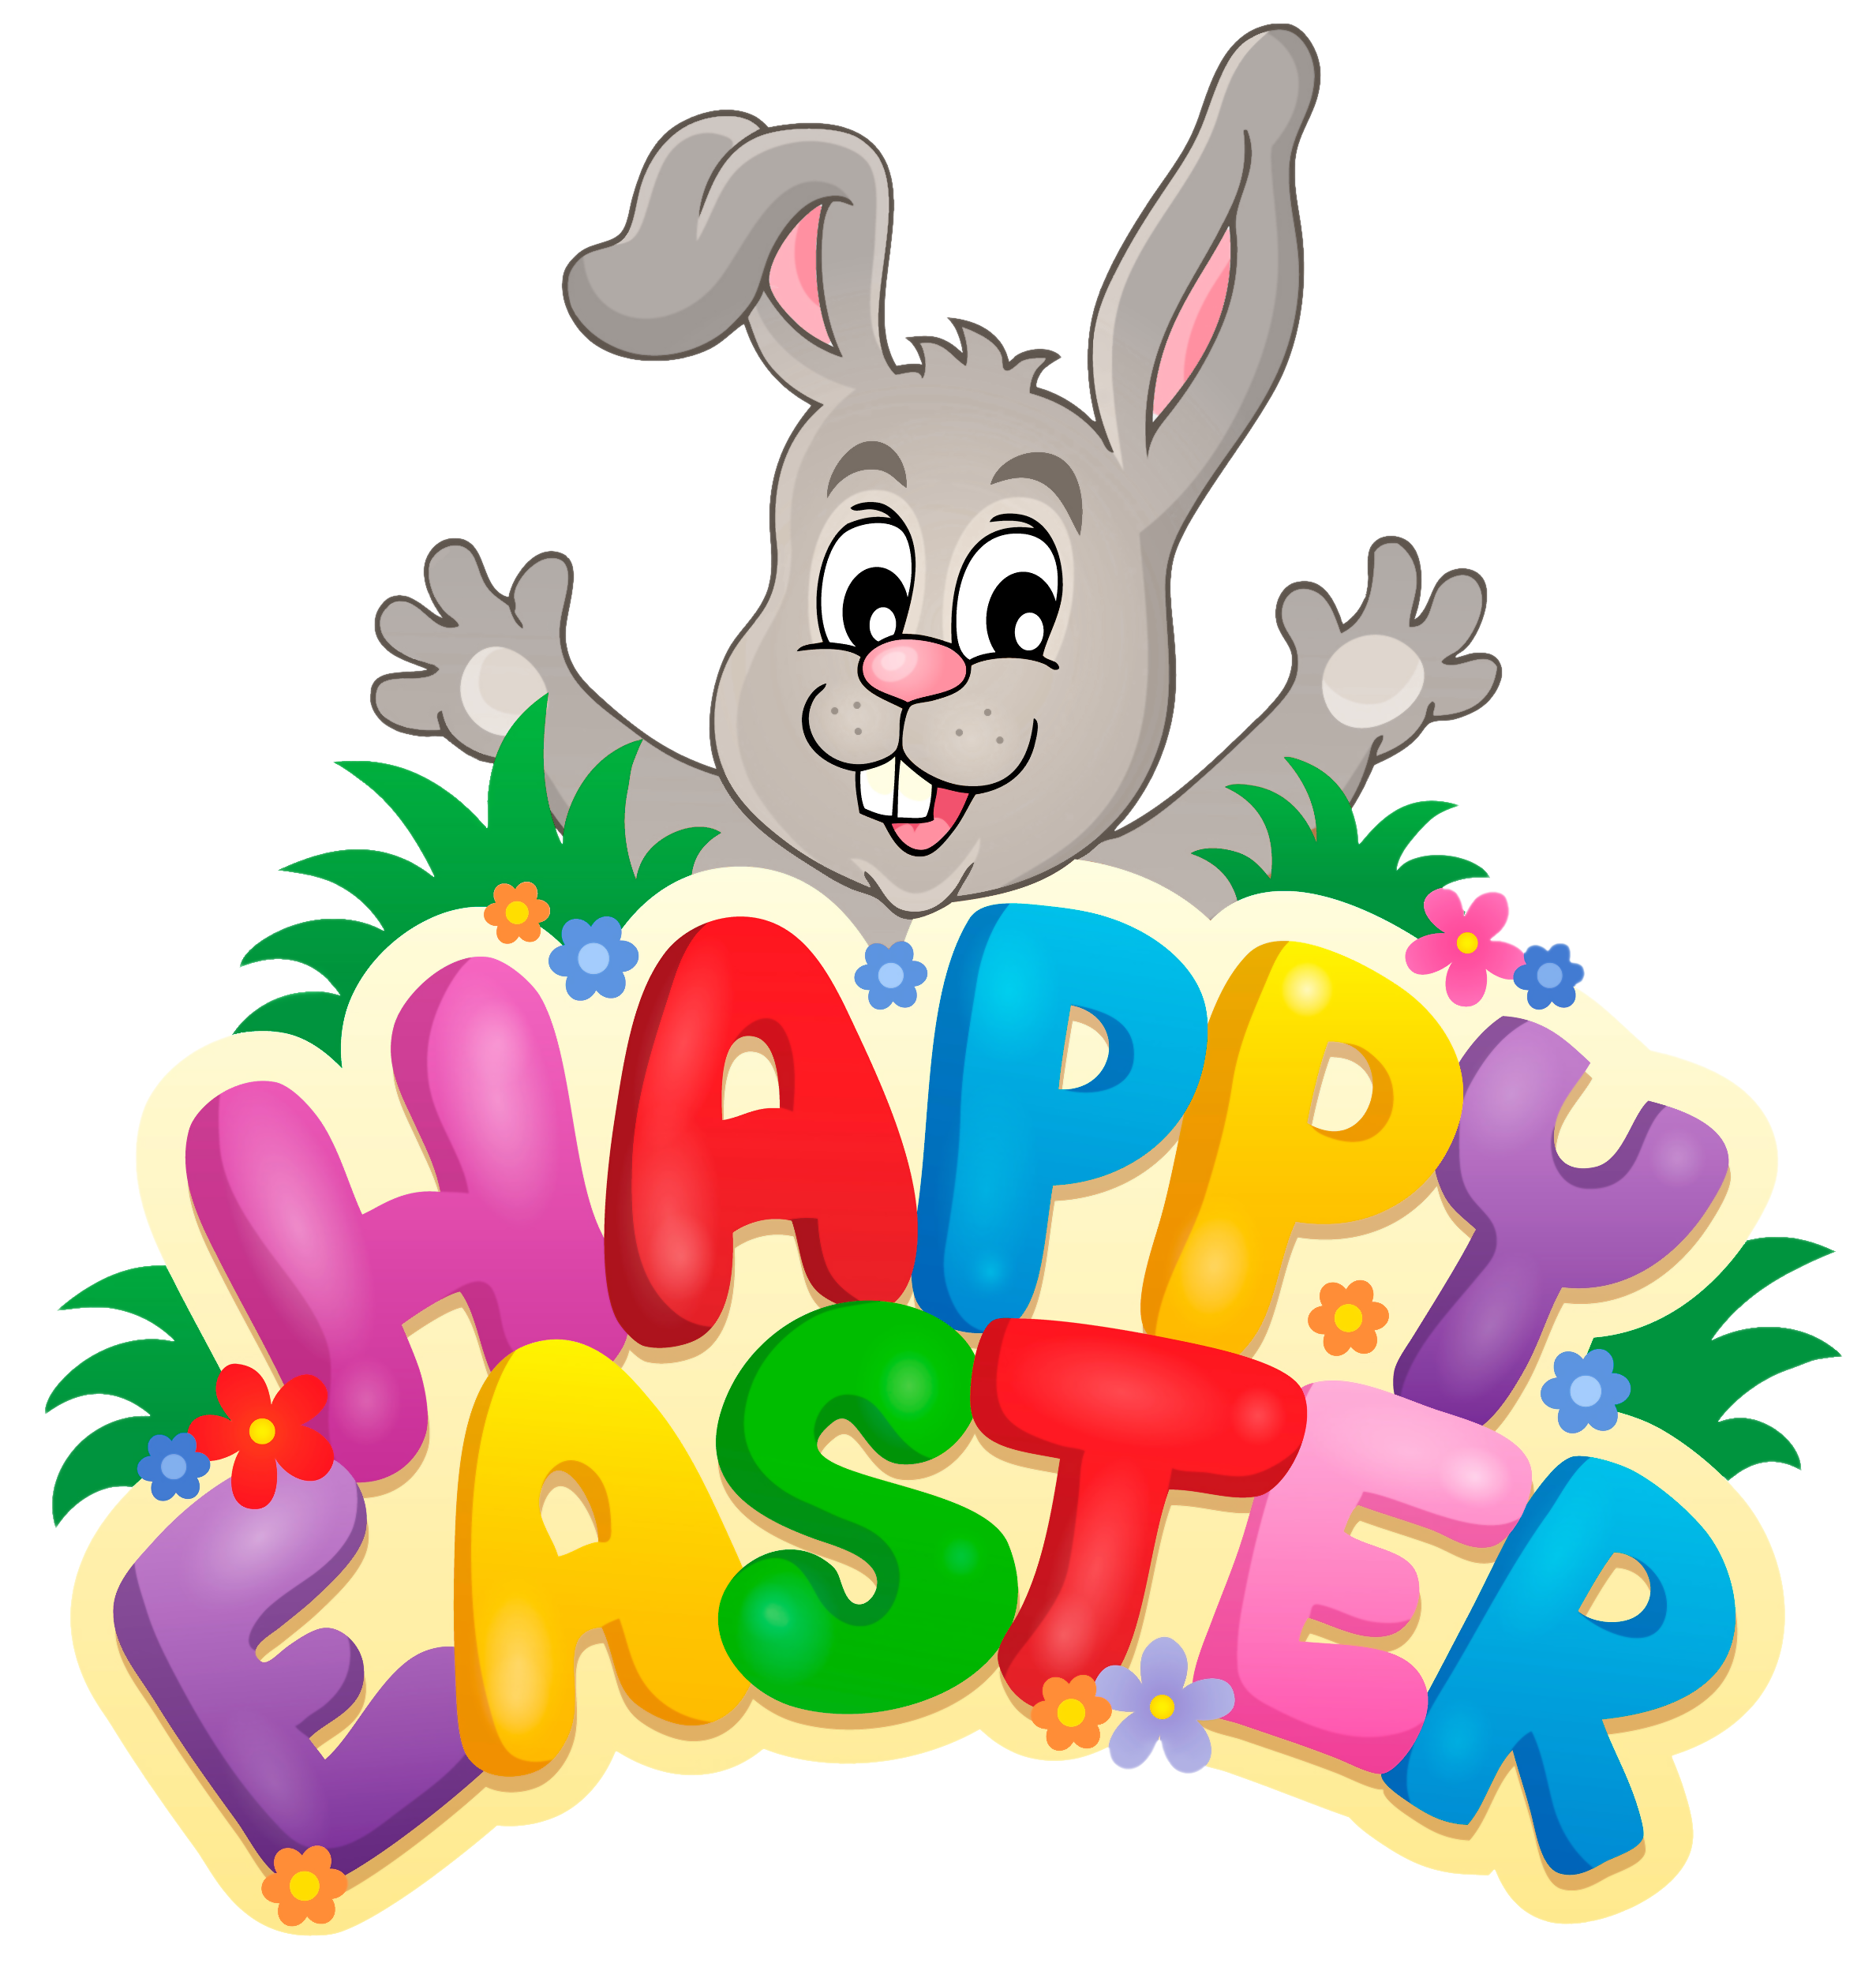 Happy easter to all. Mail clipart msg